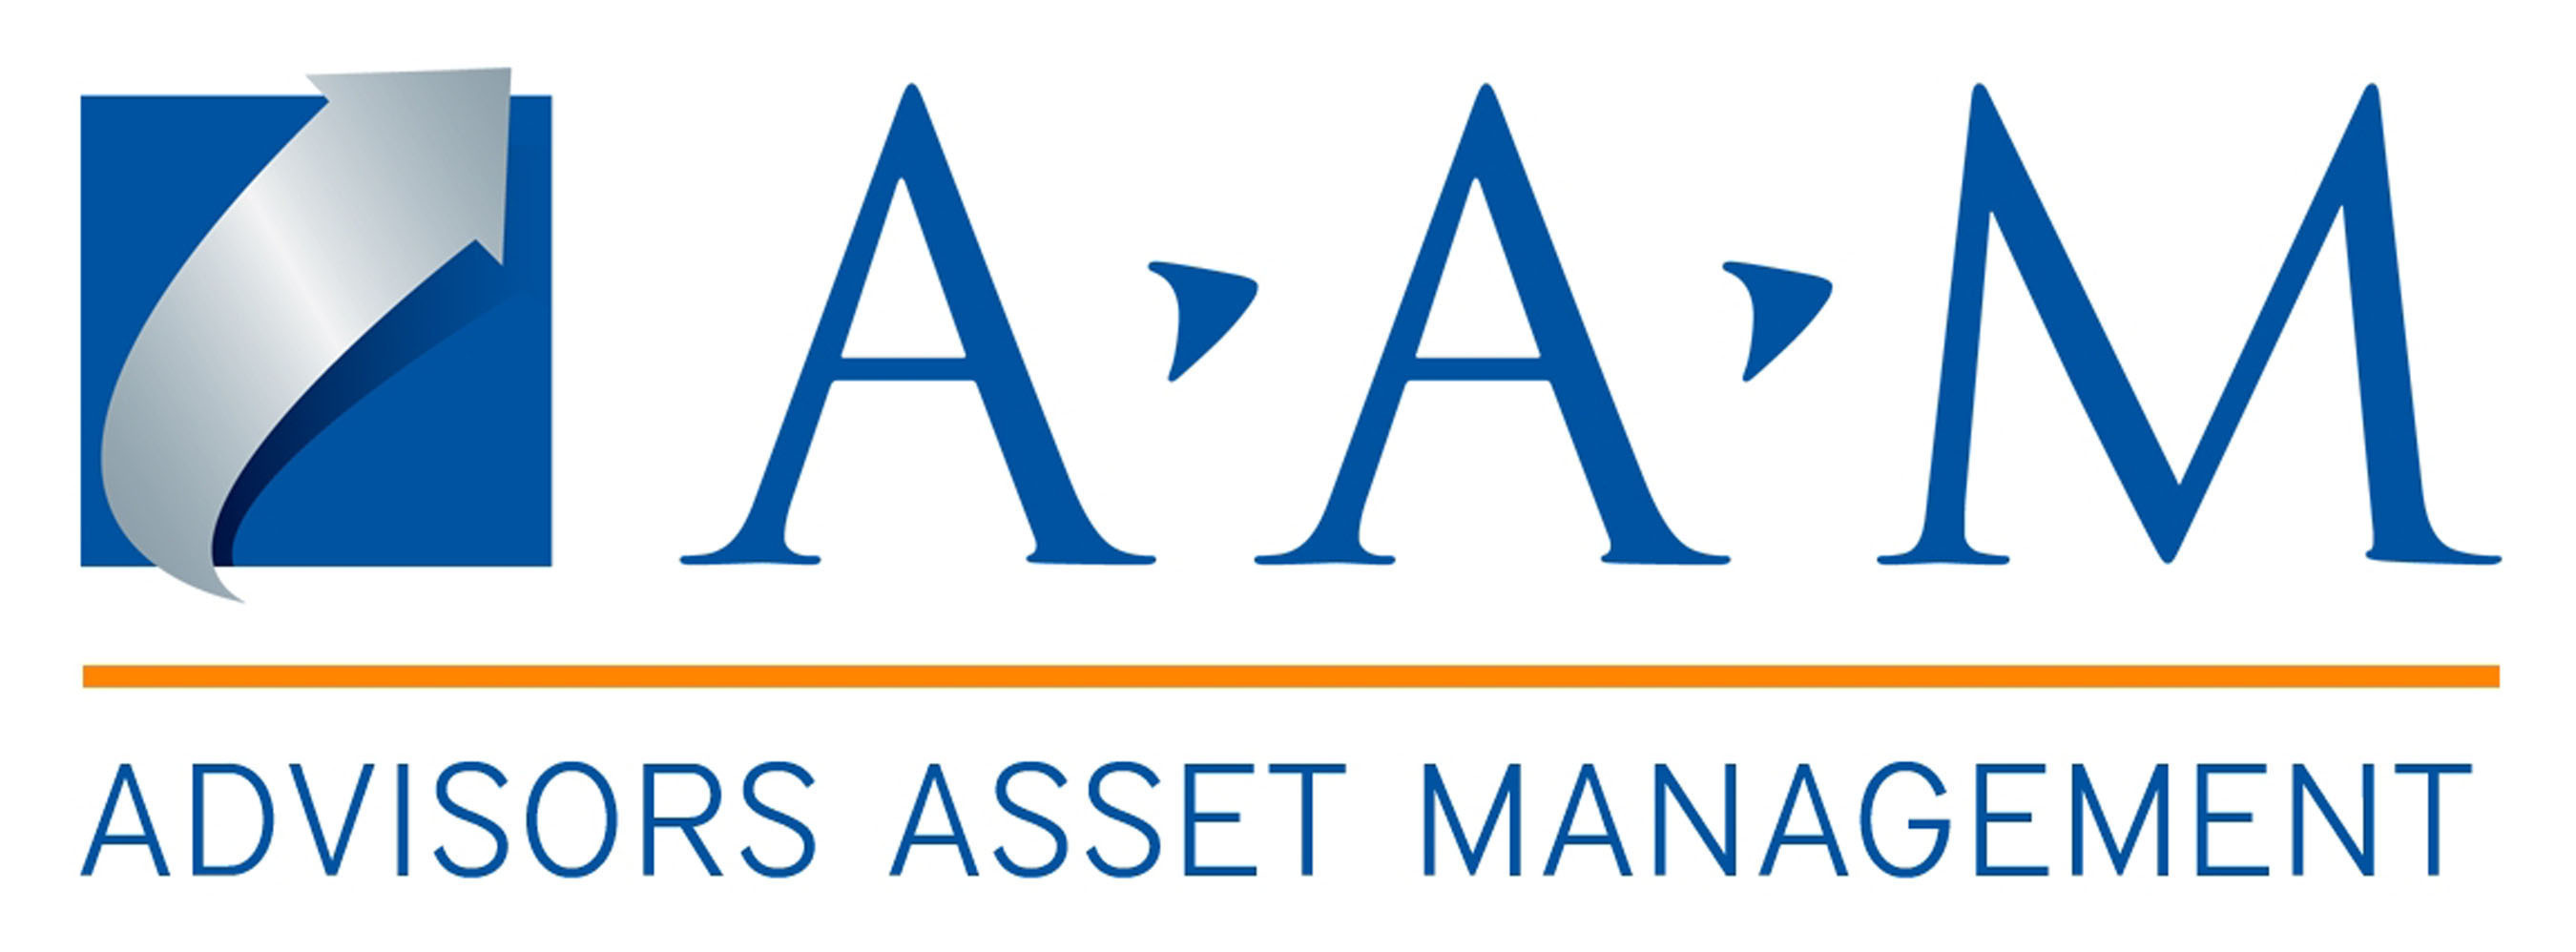 Advisors Asset Management (AAM). For more than 30 years, AAM has been a trusted investment solutions partner ...